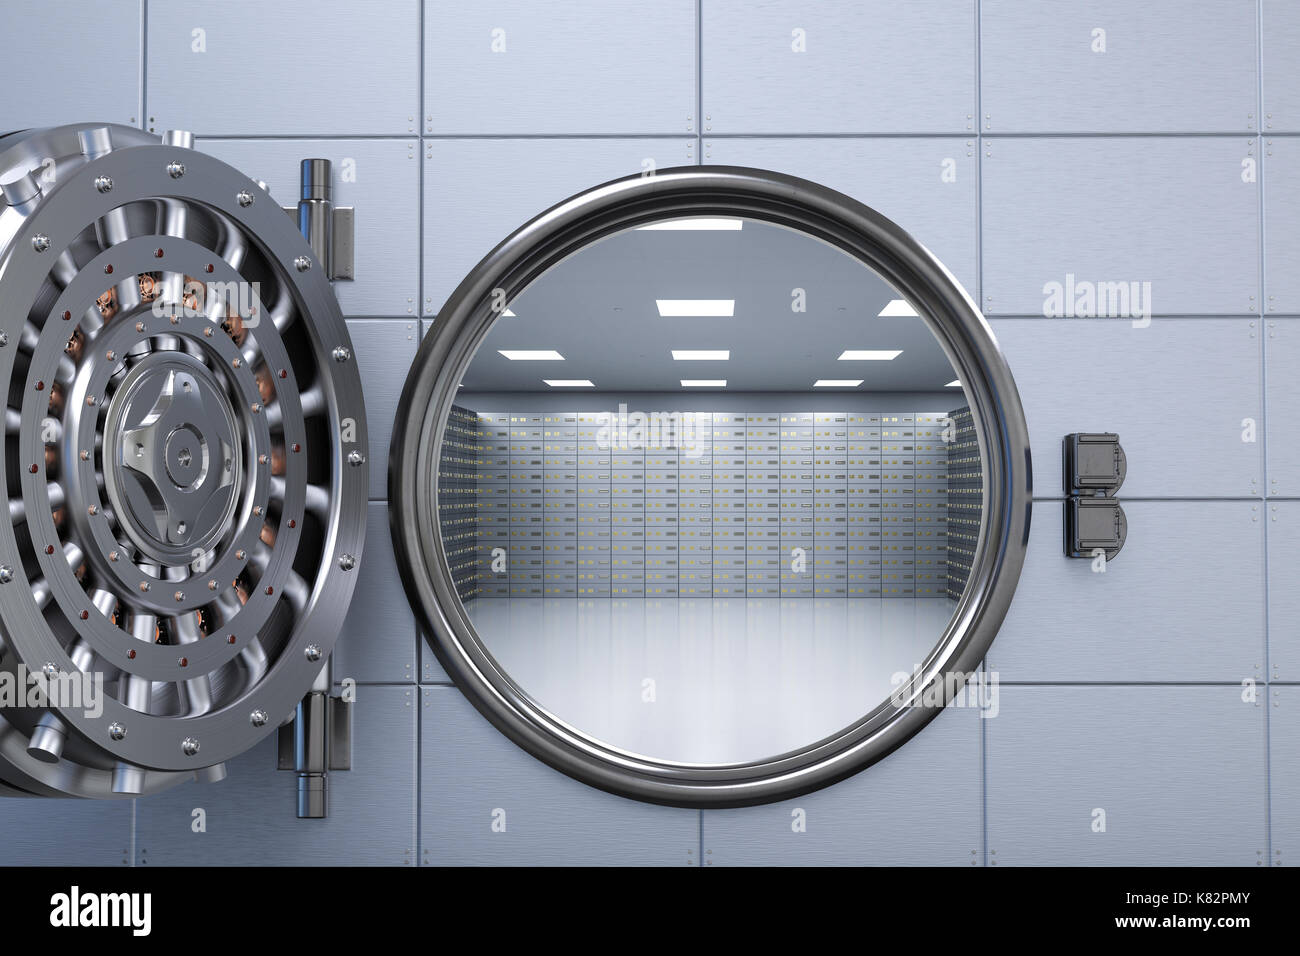 3d rendering bank vault opened with deposit boxes inside - Stock Image